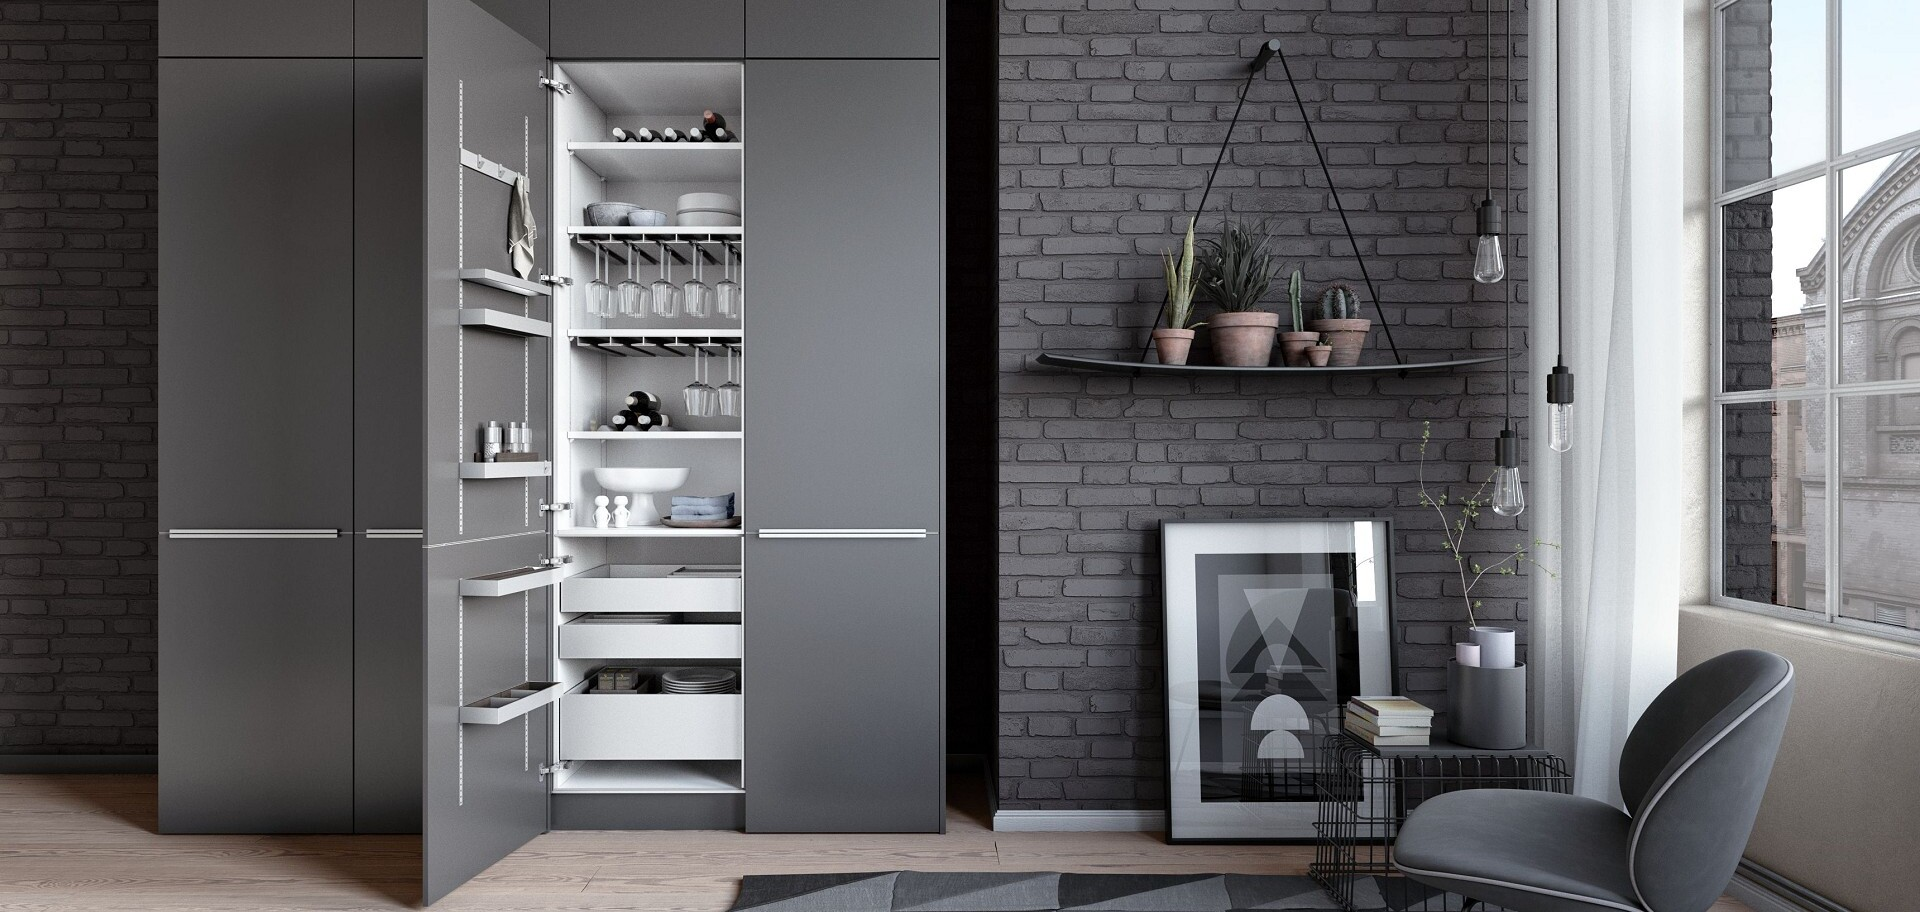 Siematic cabinets